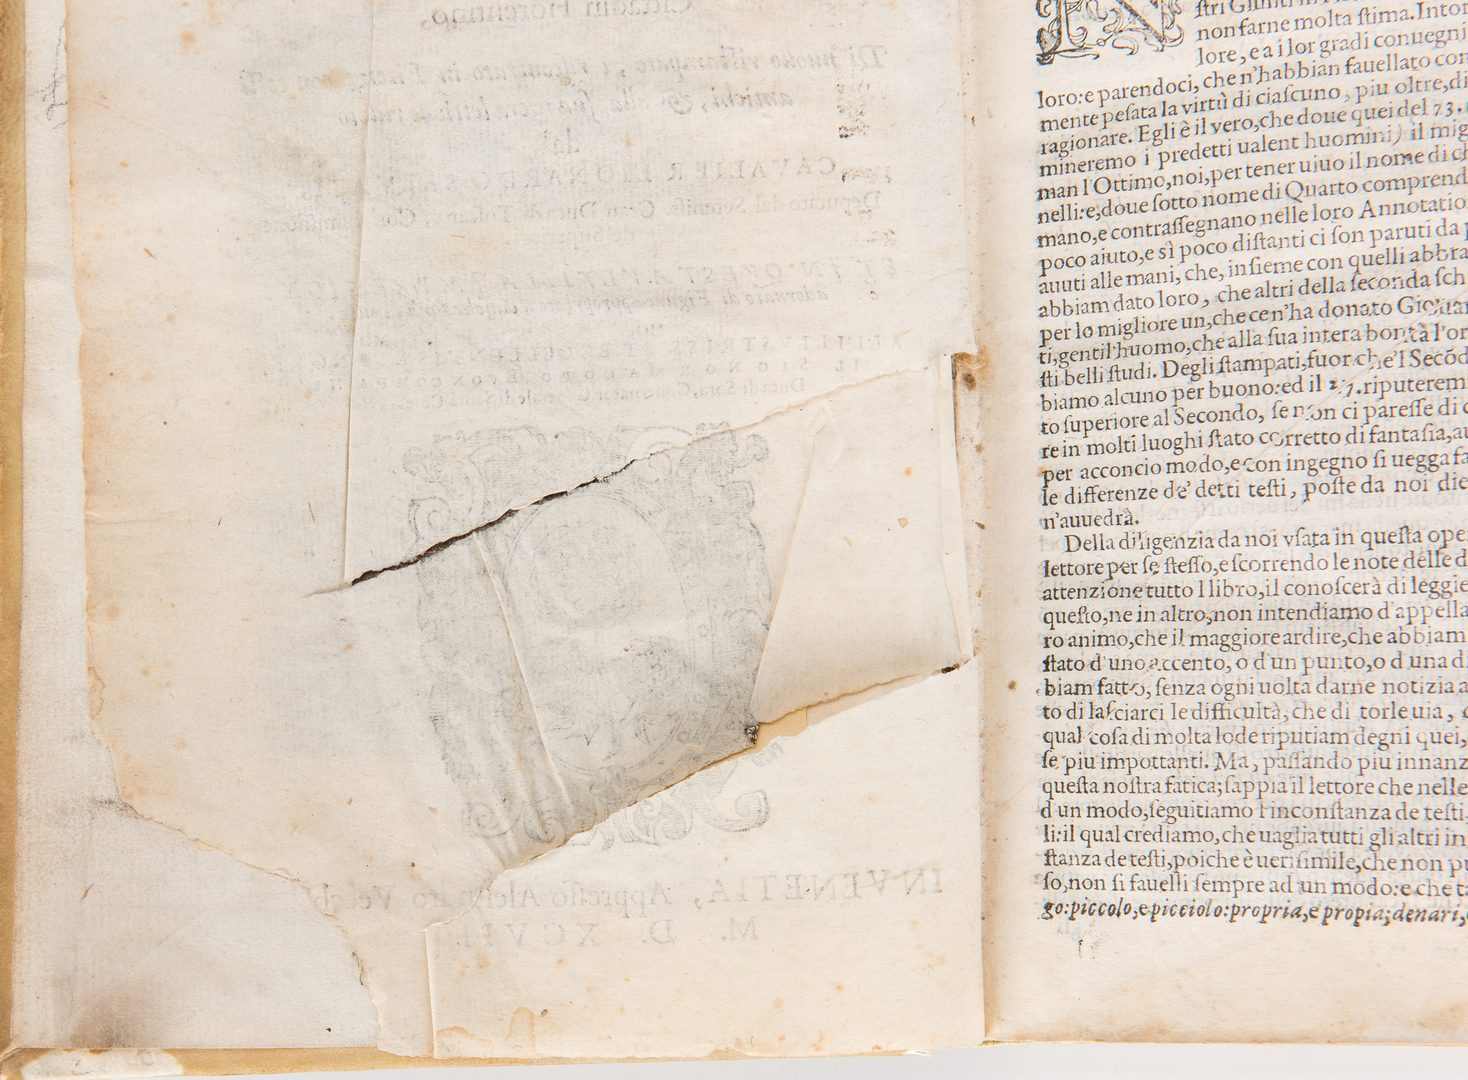 Lot 252: The Decameron, Giovanni Boccaccio, 1597